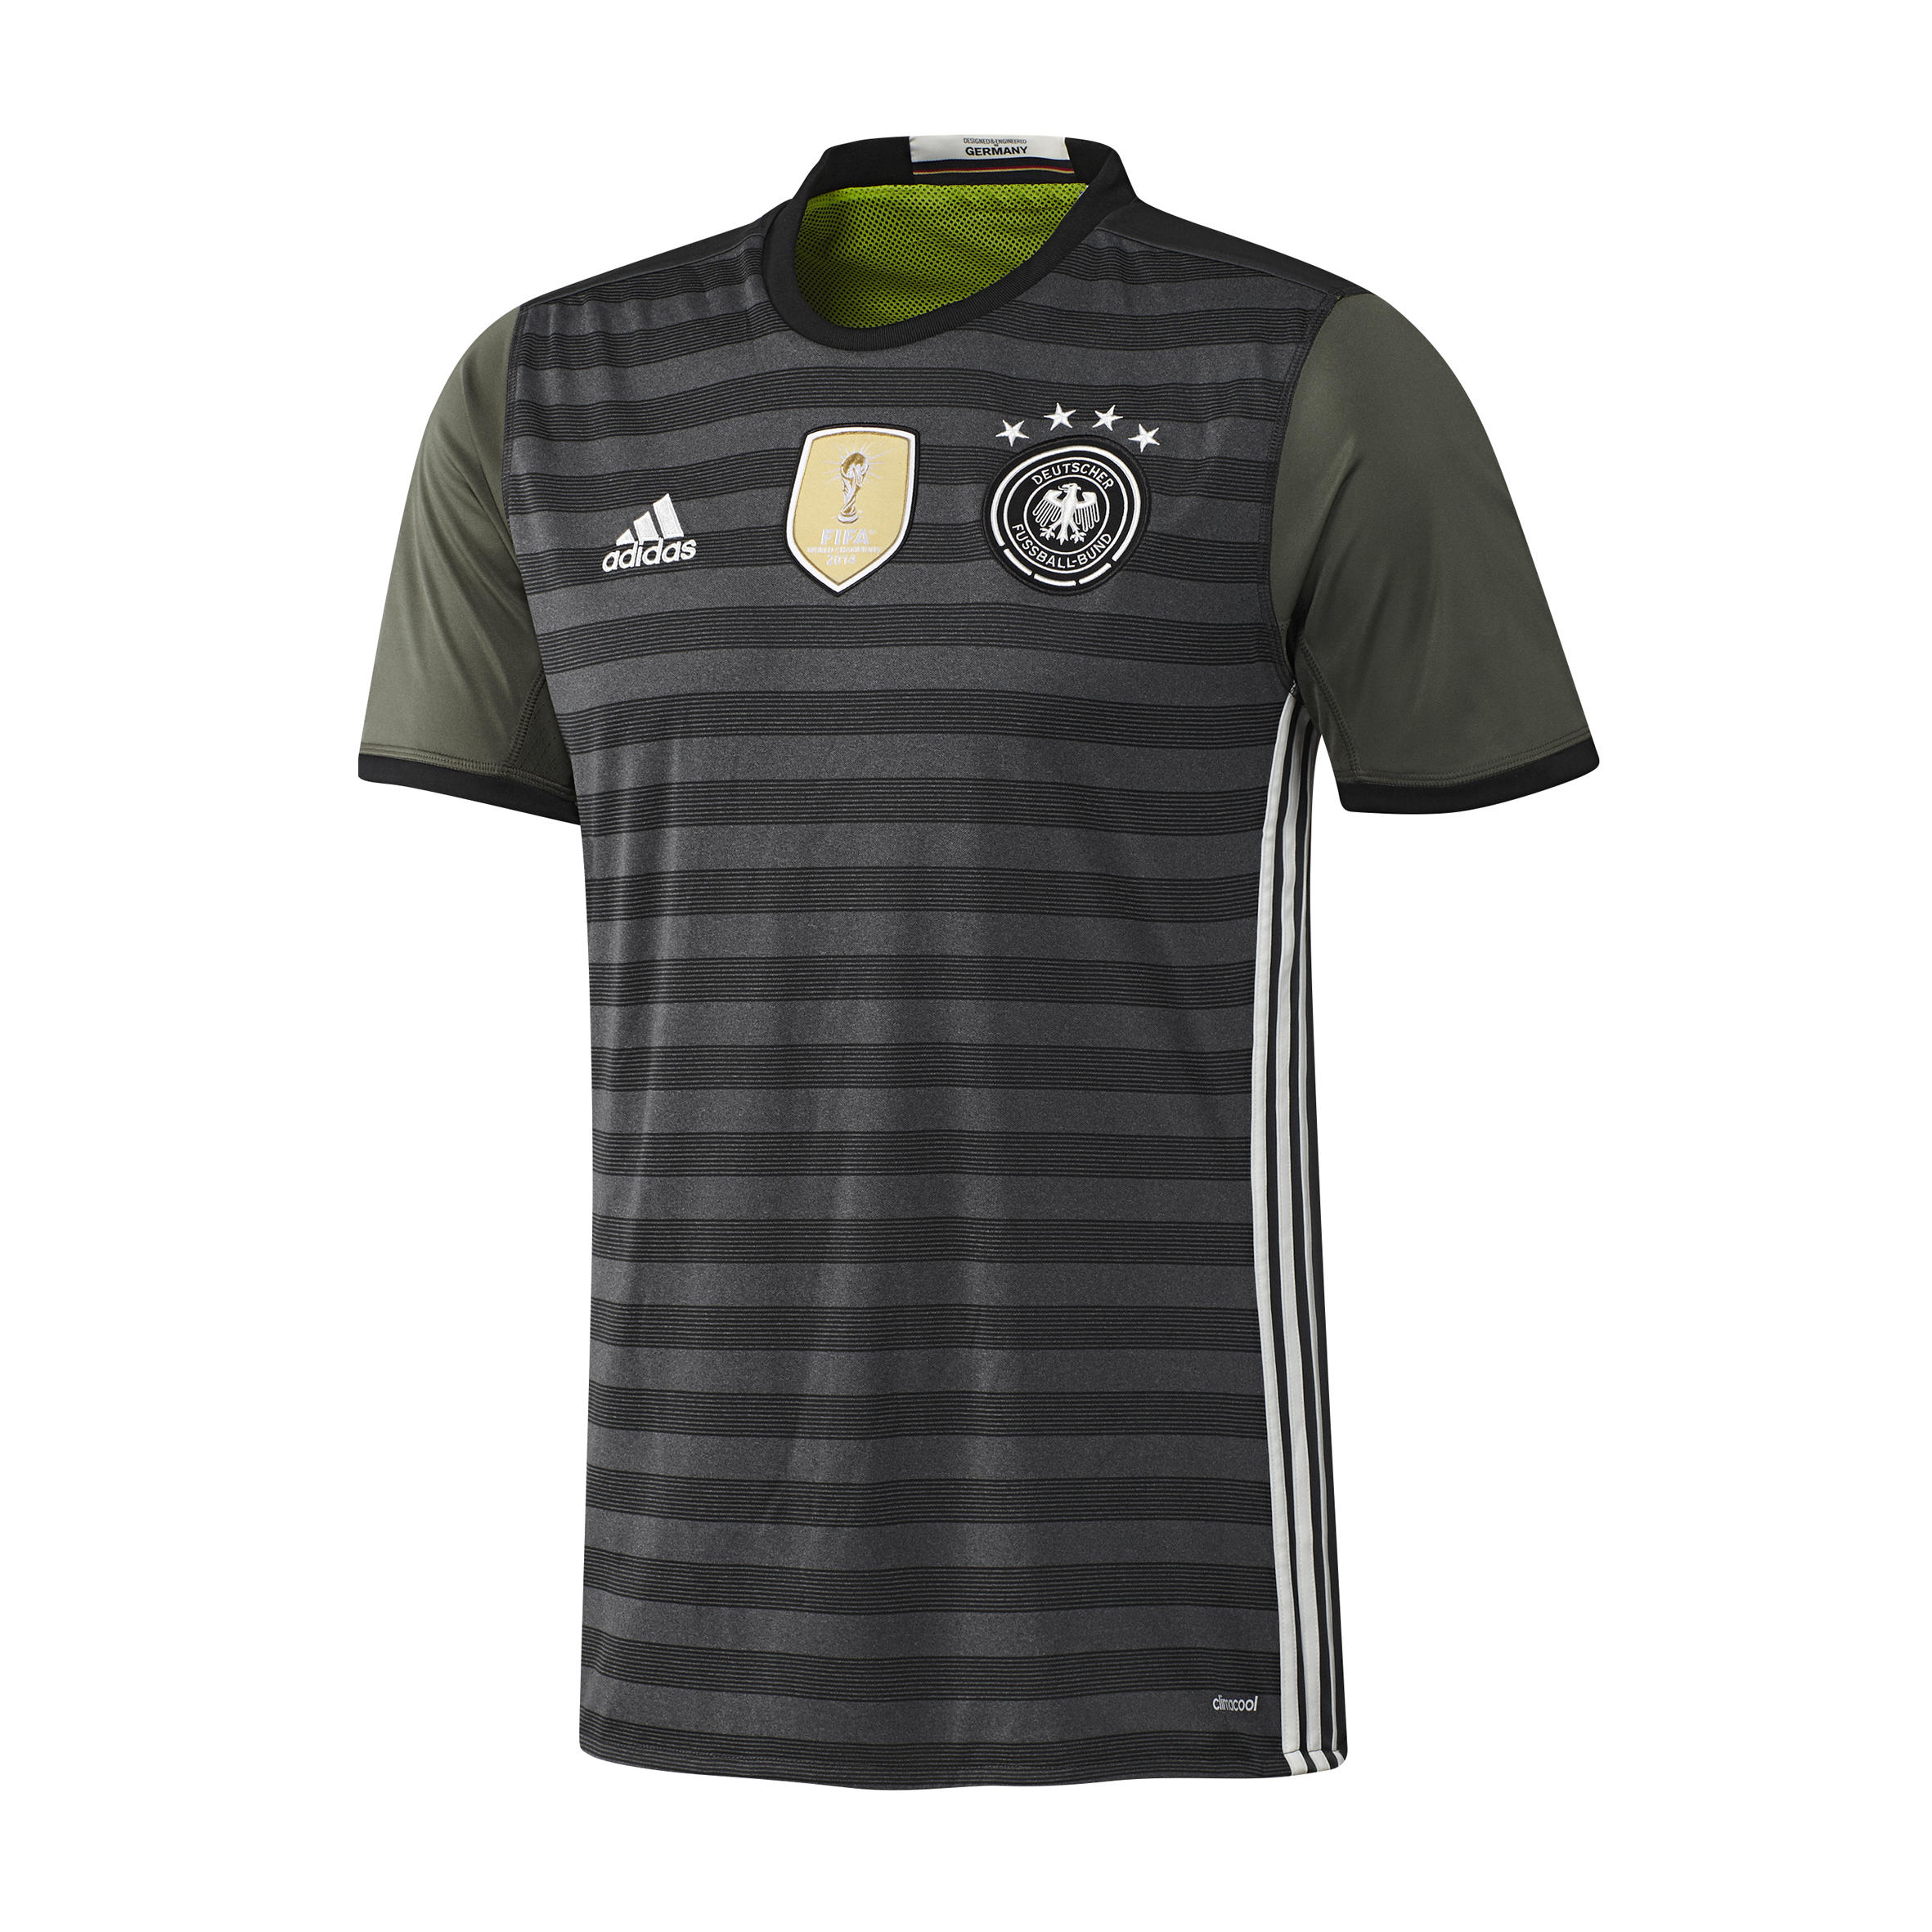 ADIDAS PERFORMANCE Shirt DFB AWAY JERSEY YOUTH